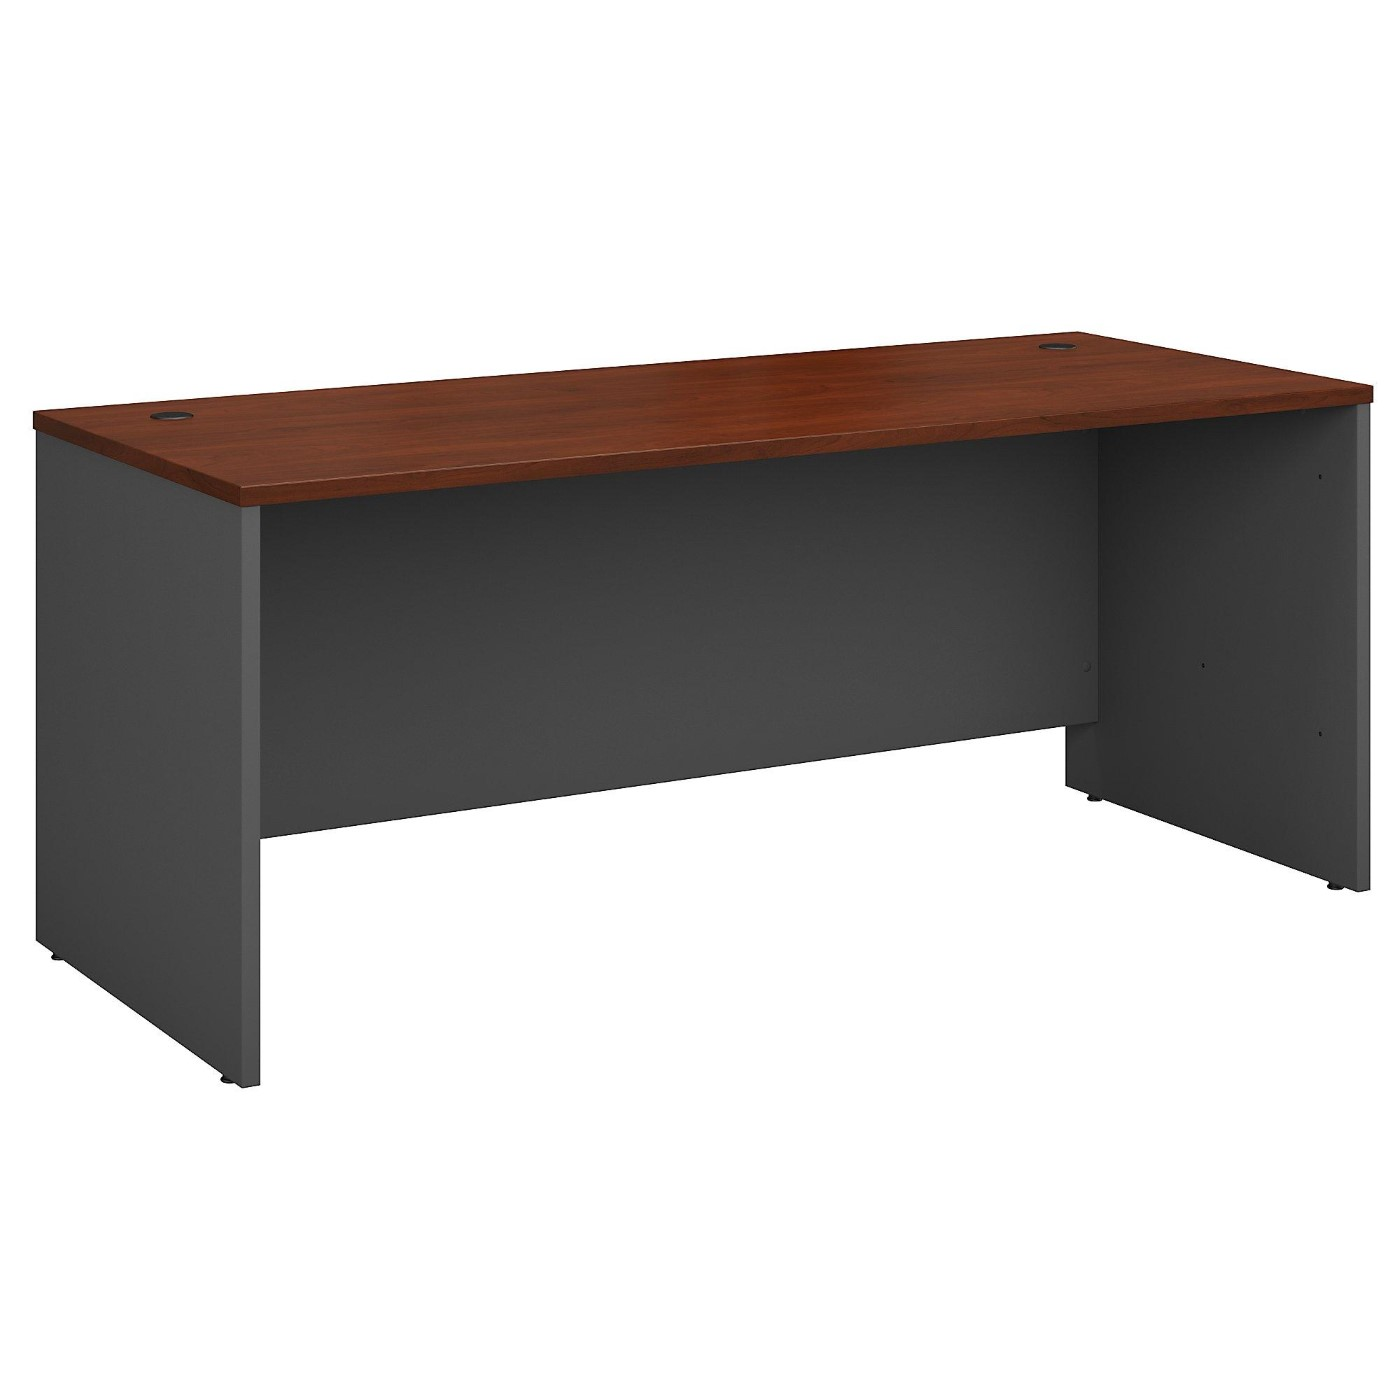 BUSH BUSINESS FURNITURE SERIES C 72W X 30D OFFICE DESK. FREE SHIPPING</font></b></font></b>&#x1F384<font color=red><b>ERGONOMICHOME HOLIDAY SALE - ENDS DEC. 17, 2019</b></font>&#x1F384